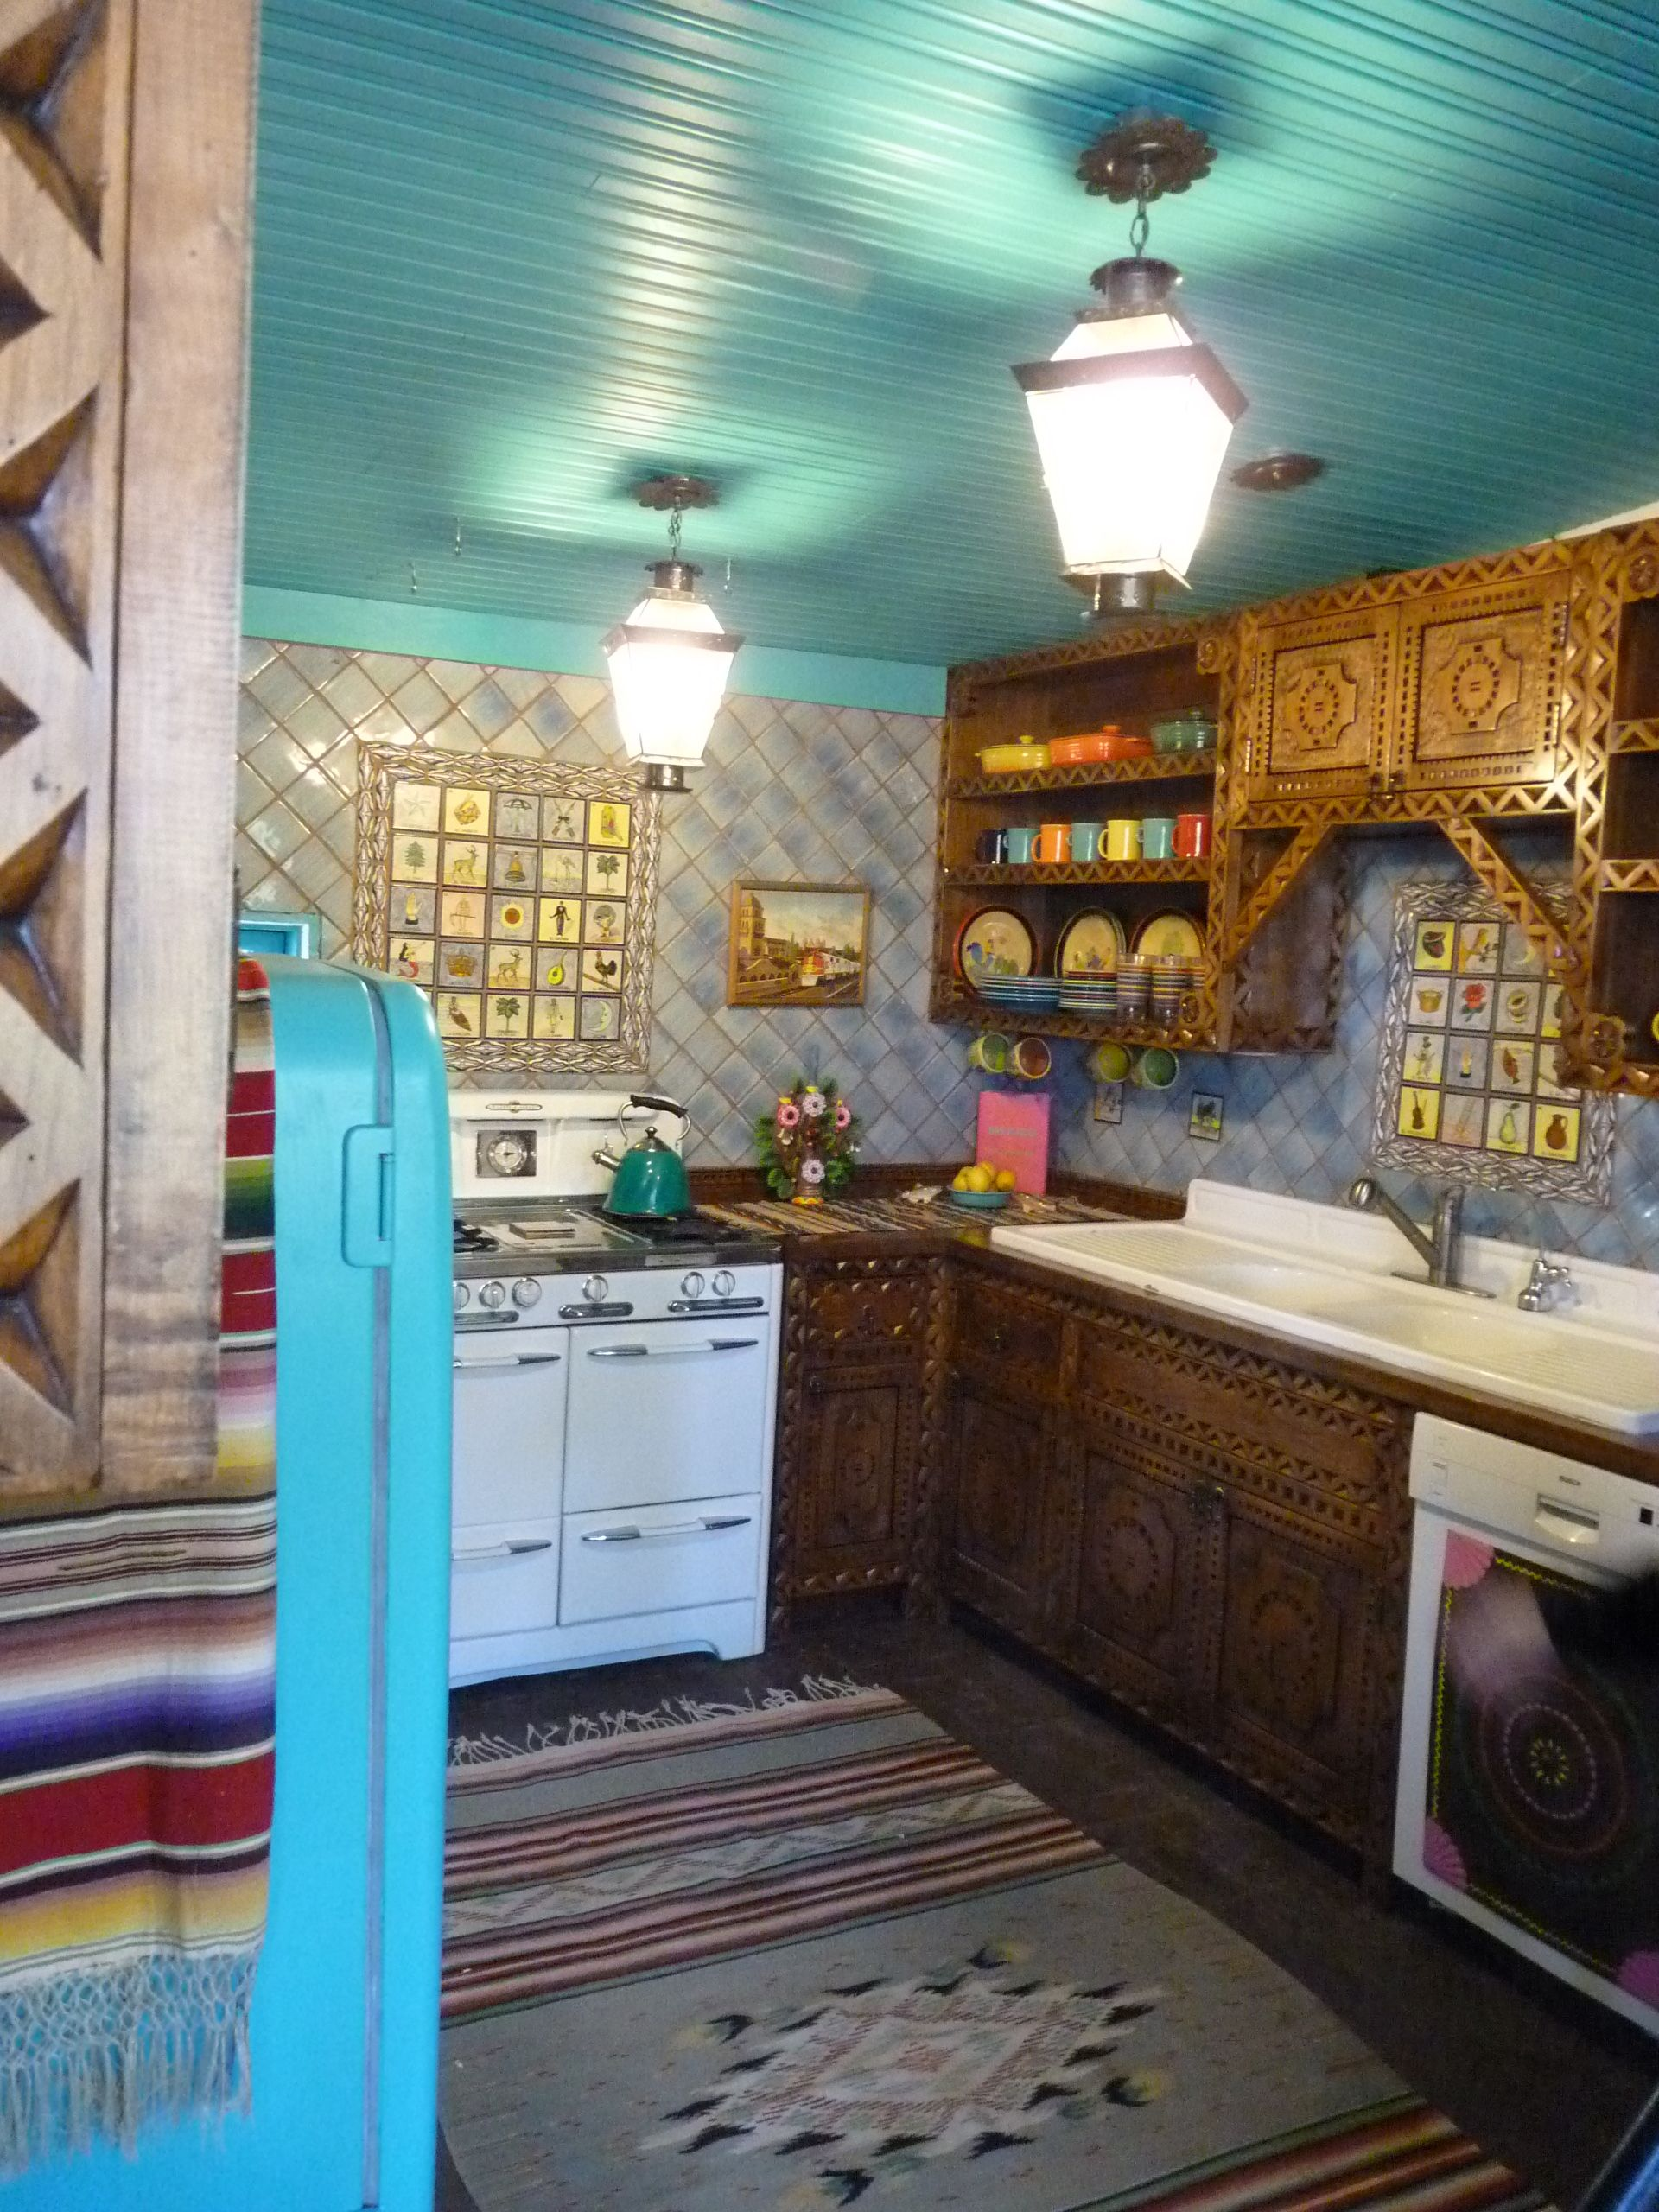 Spanish Colonial Revival Door Pattern New Kitchen From Carvedcabinet Com With Talavera Tile And Folk Art Fine Finishe Hacienda Style Reface Cabinet Refacing